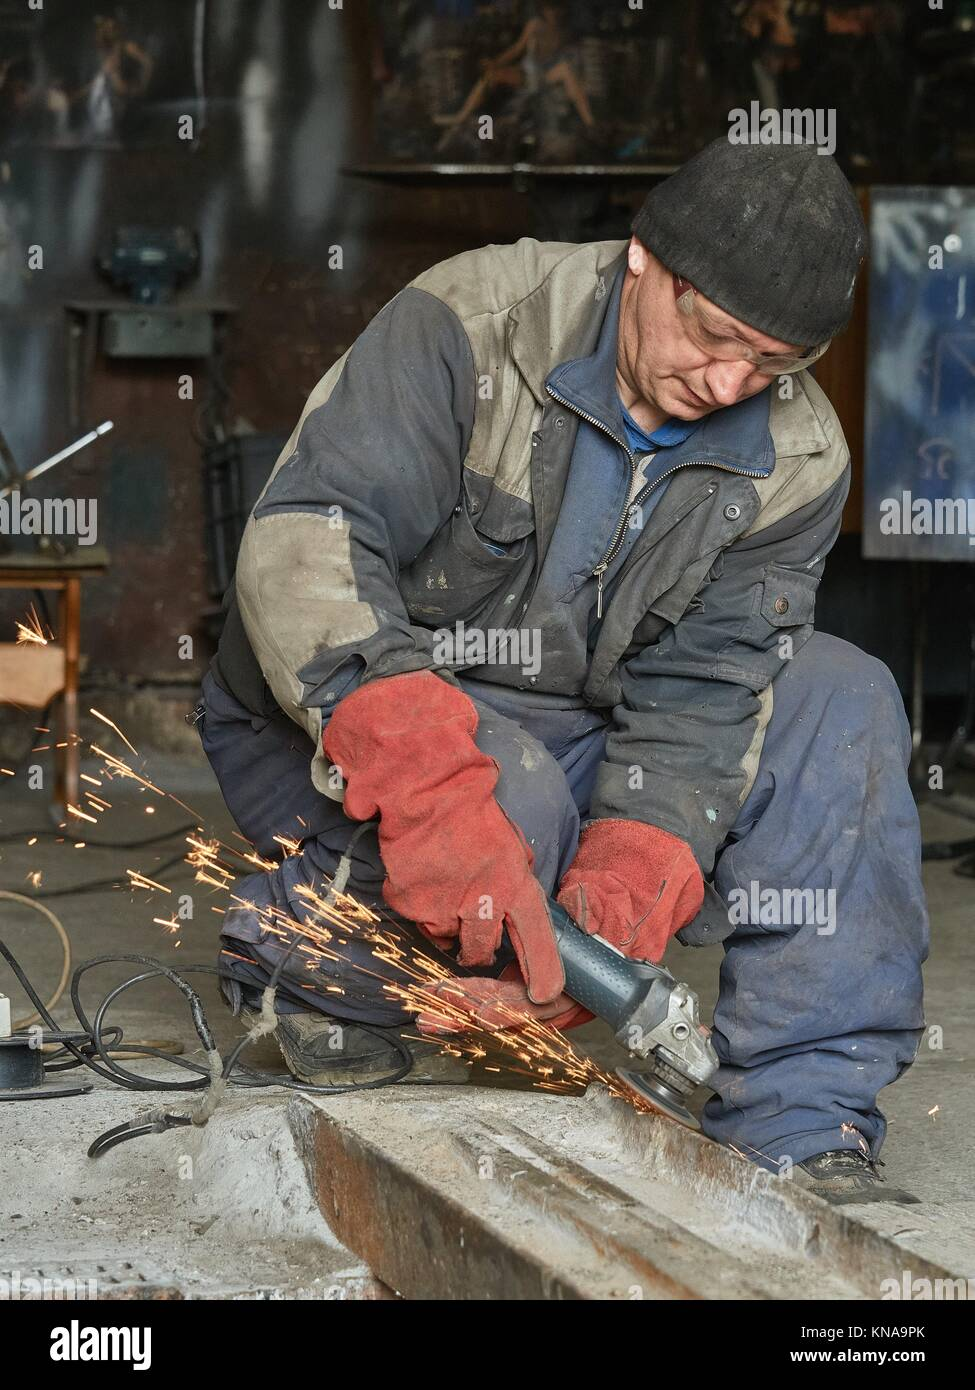 Worker grinds a metal rail for subsequent welding. The photo shows the sparks from the grinding wheel. - Stock Image